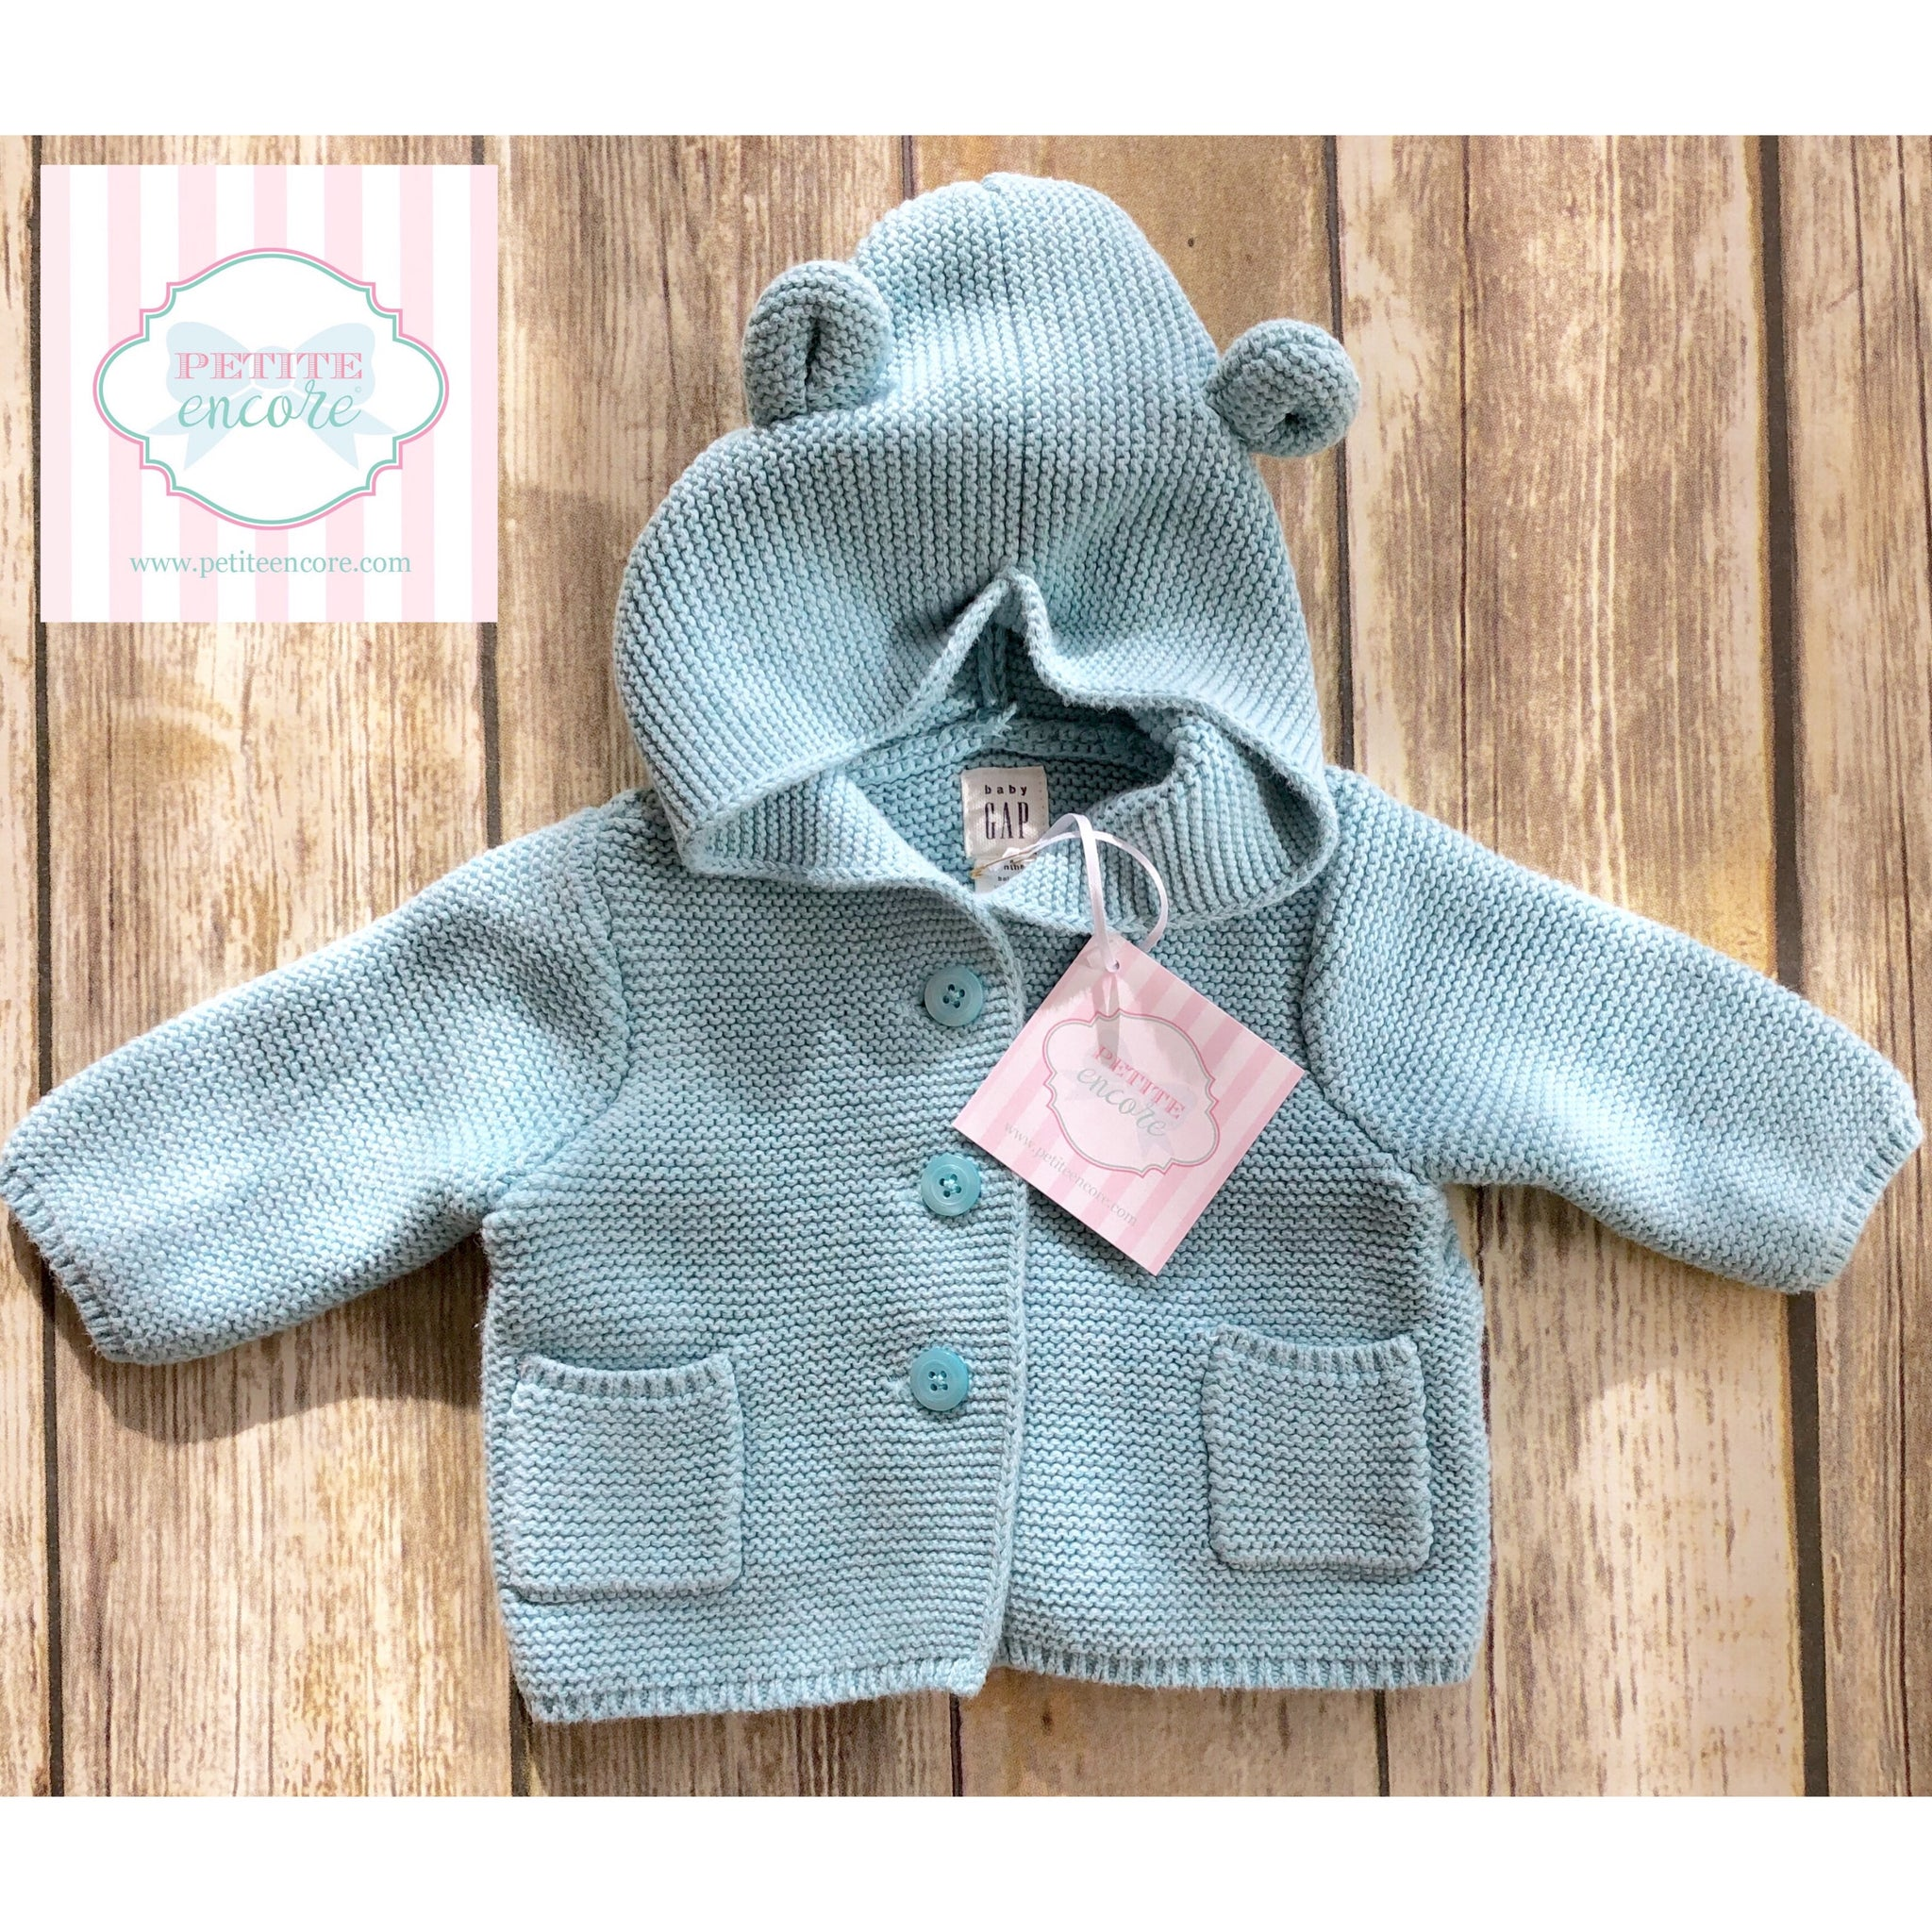 c8587a9d336c Baby Gap hooded sweater 0-3m – Petite Encore